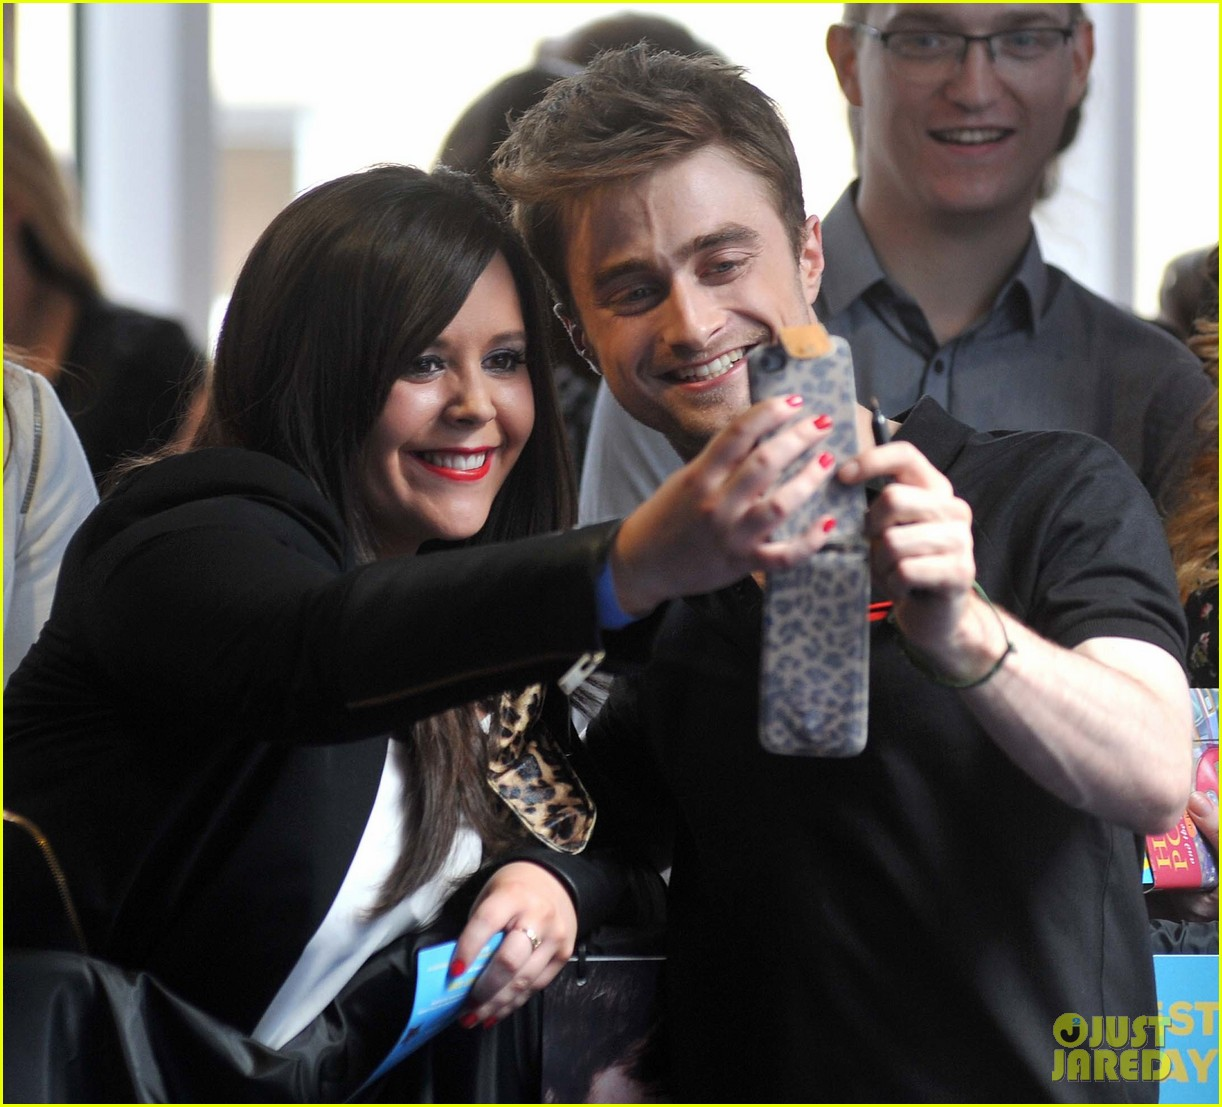 daniel radcliffe pose with fans what if dublin ireland 16